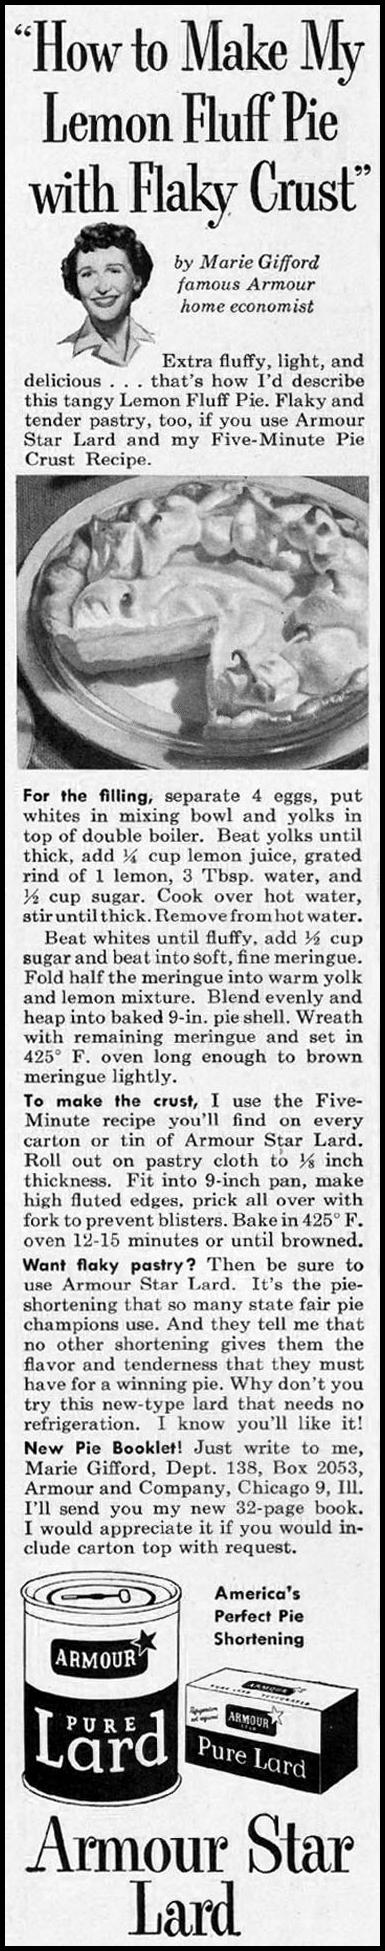 ARMOUR STAR LARD LADIES' HOME JOURNAL 03/01/1954 p. 145